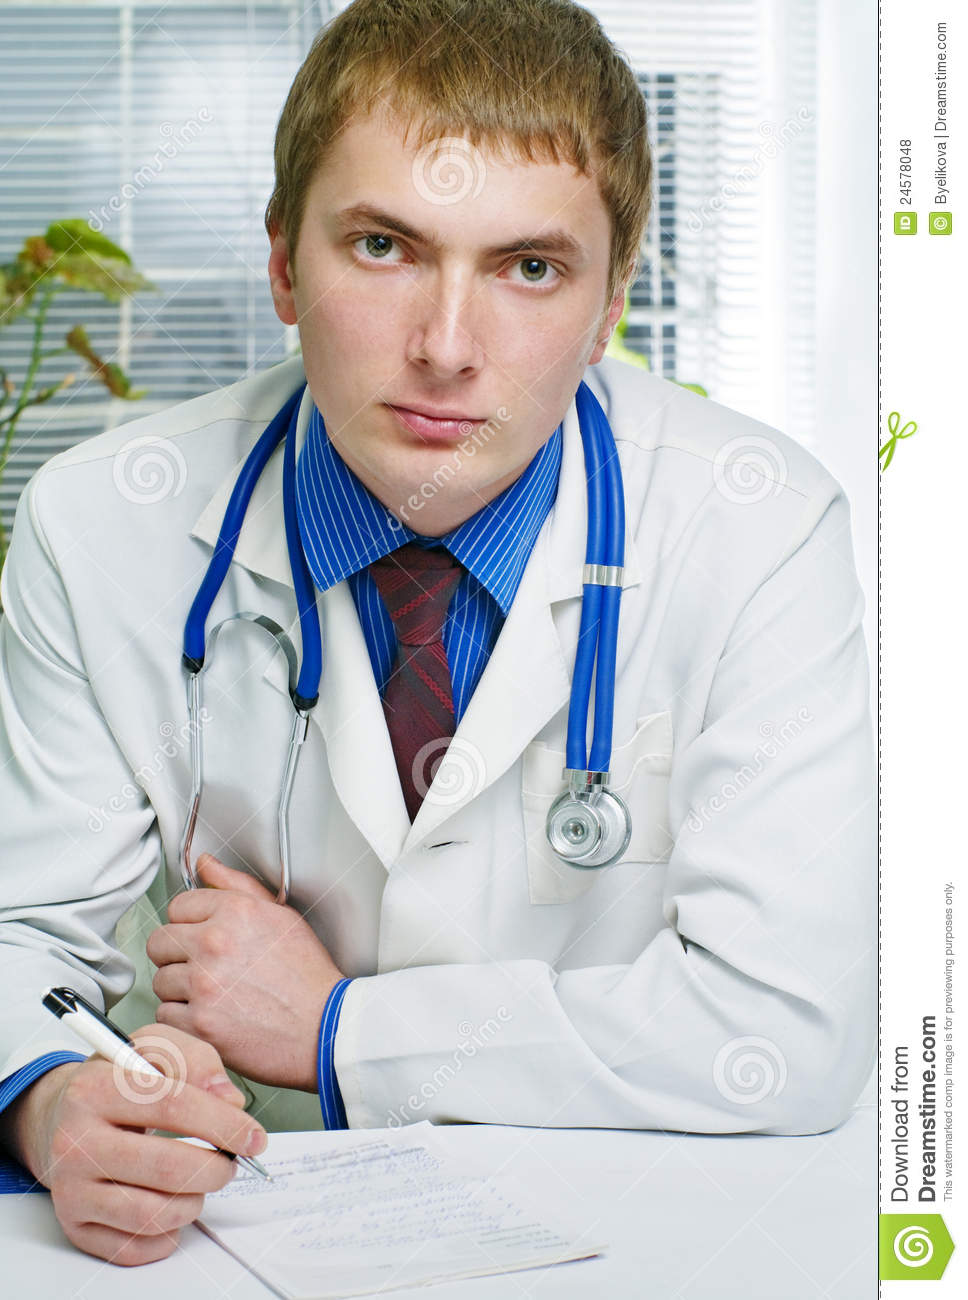 A medical doctor in hospital